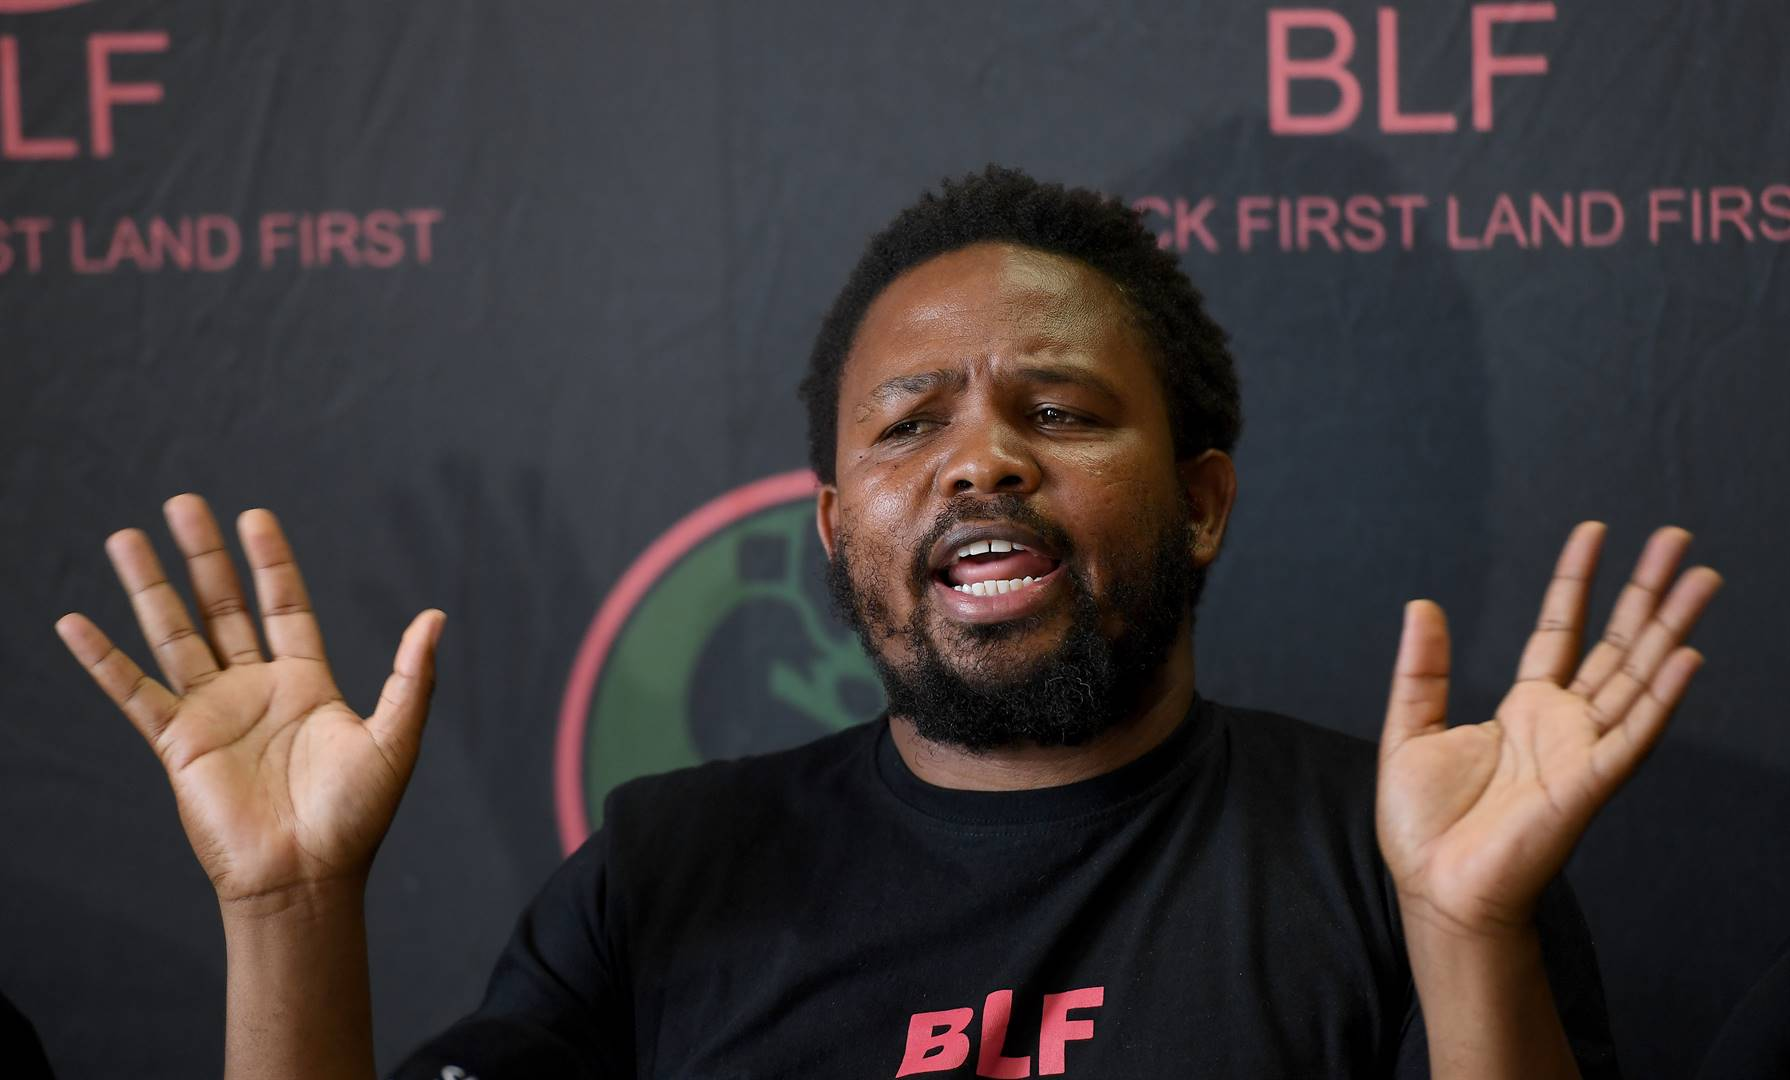 News24.com | BLF mulls whether it should call it quits or go 'underground'